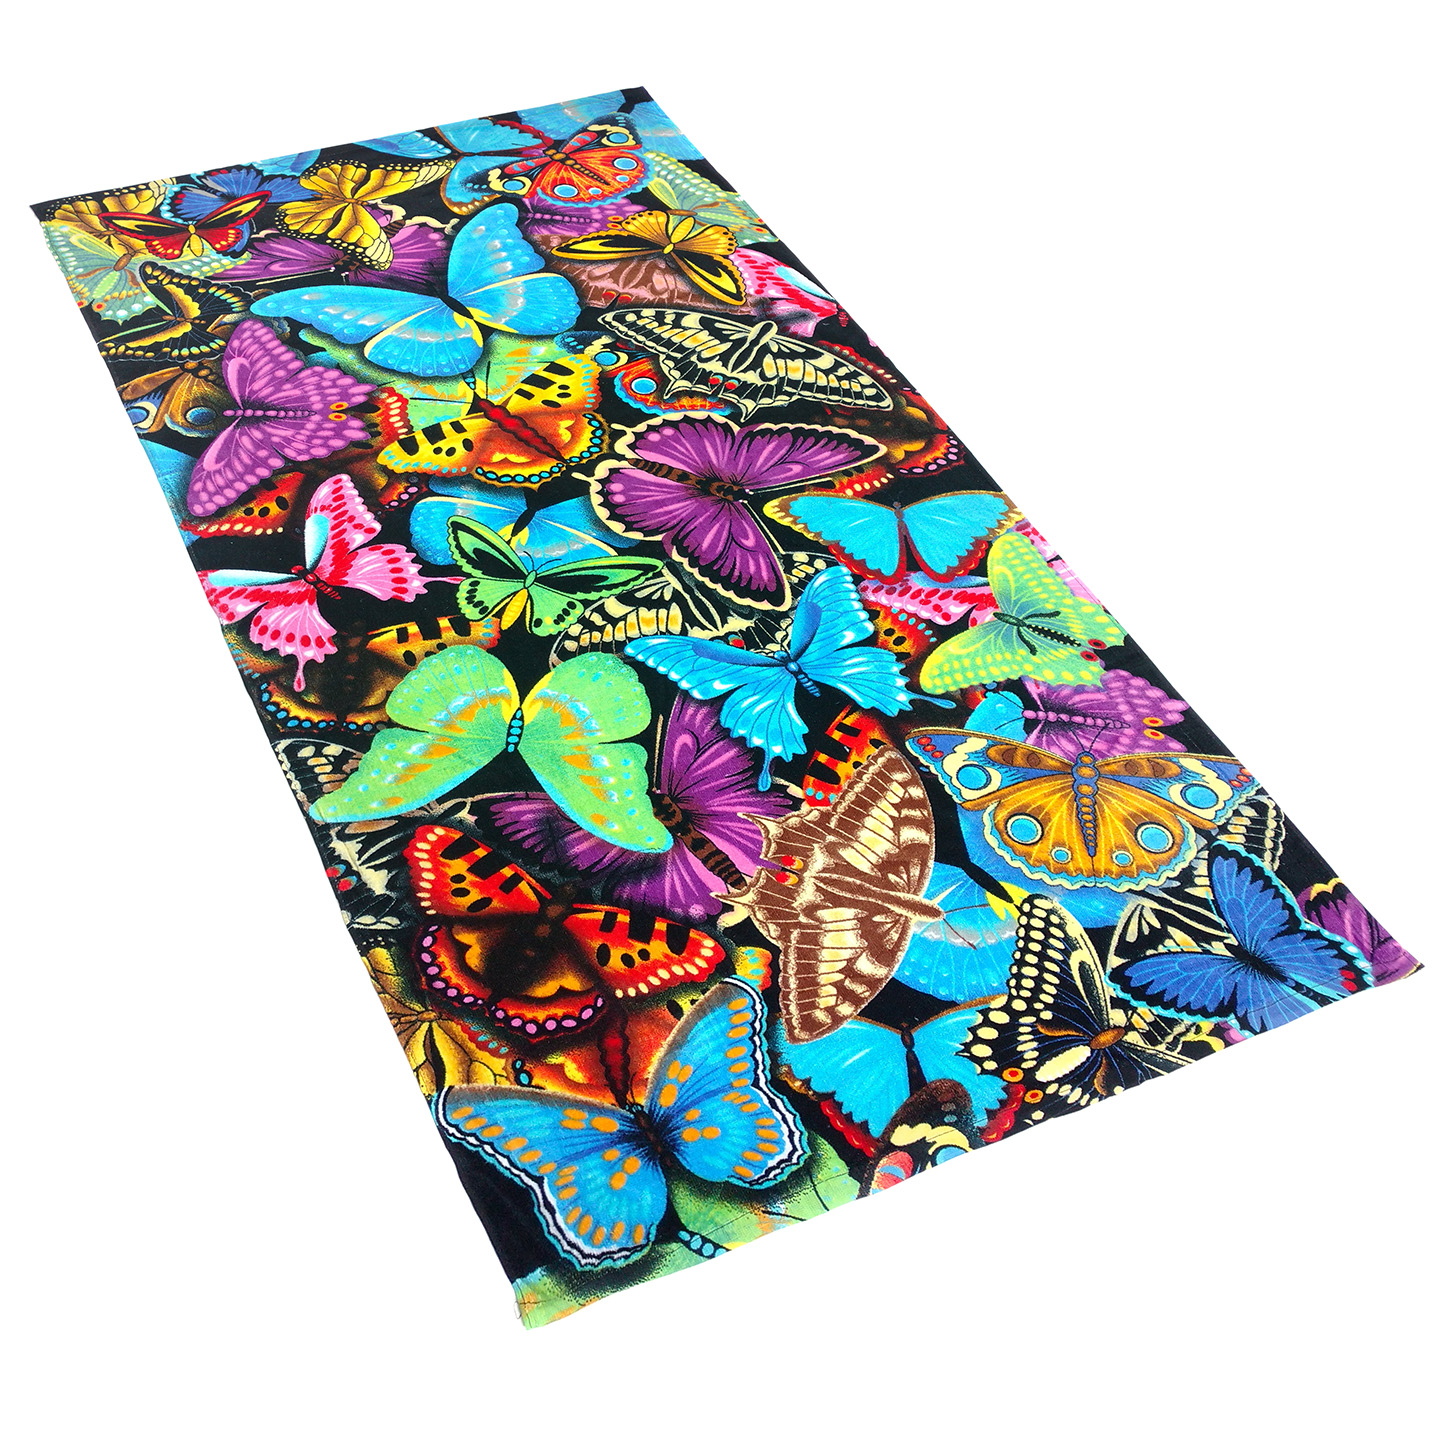 Tropical Beach Towel BK-105049 - 30 x 60